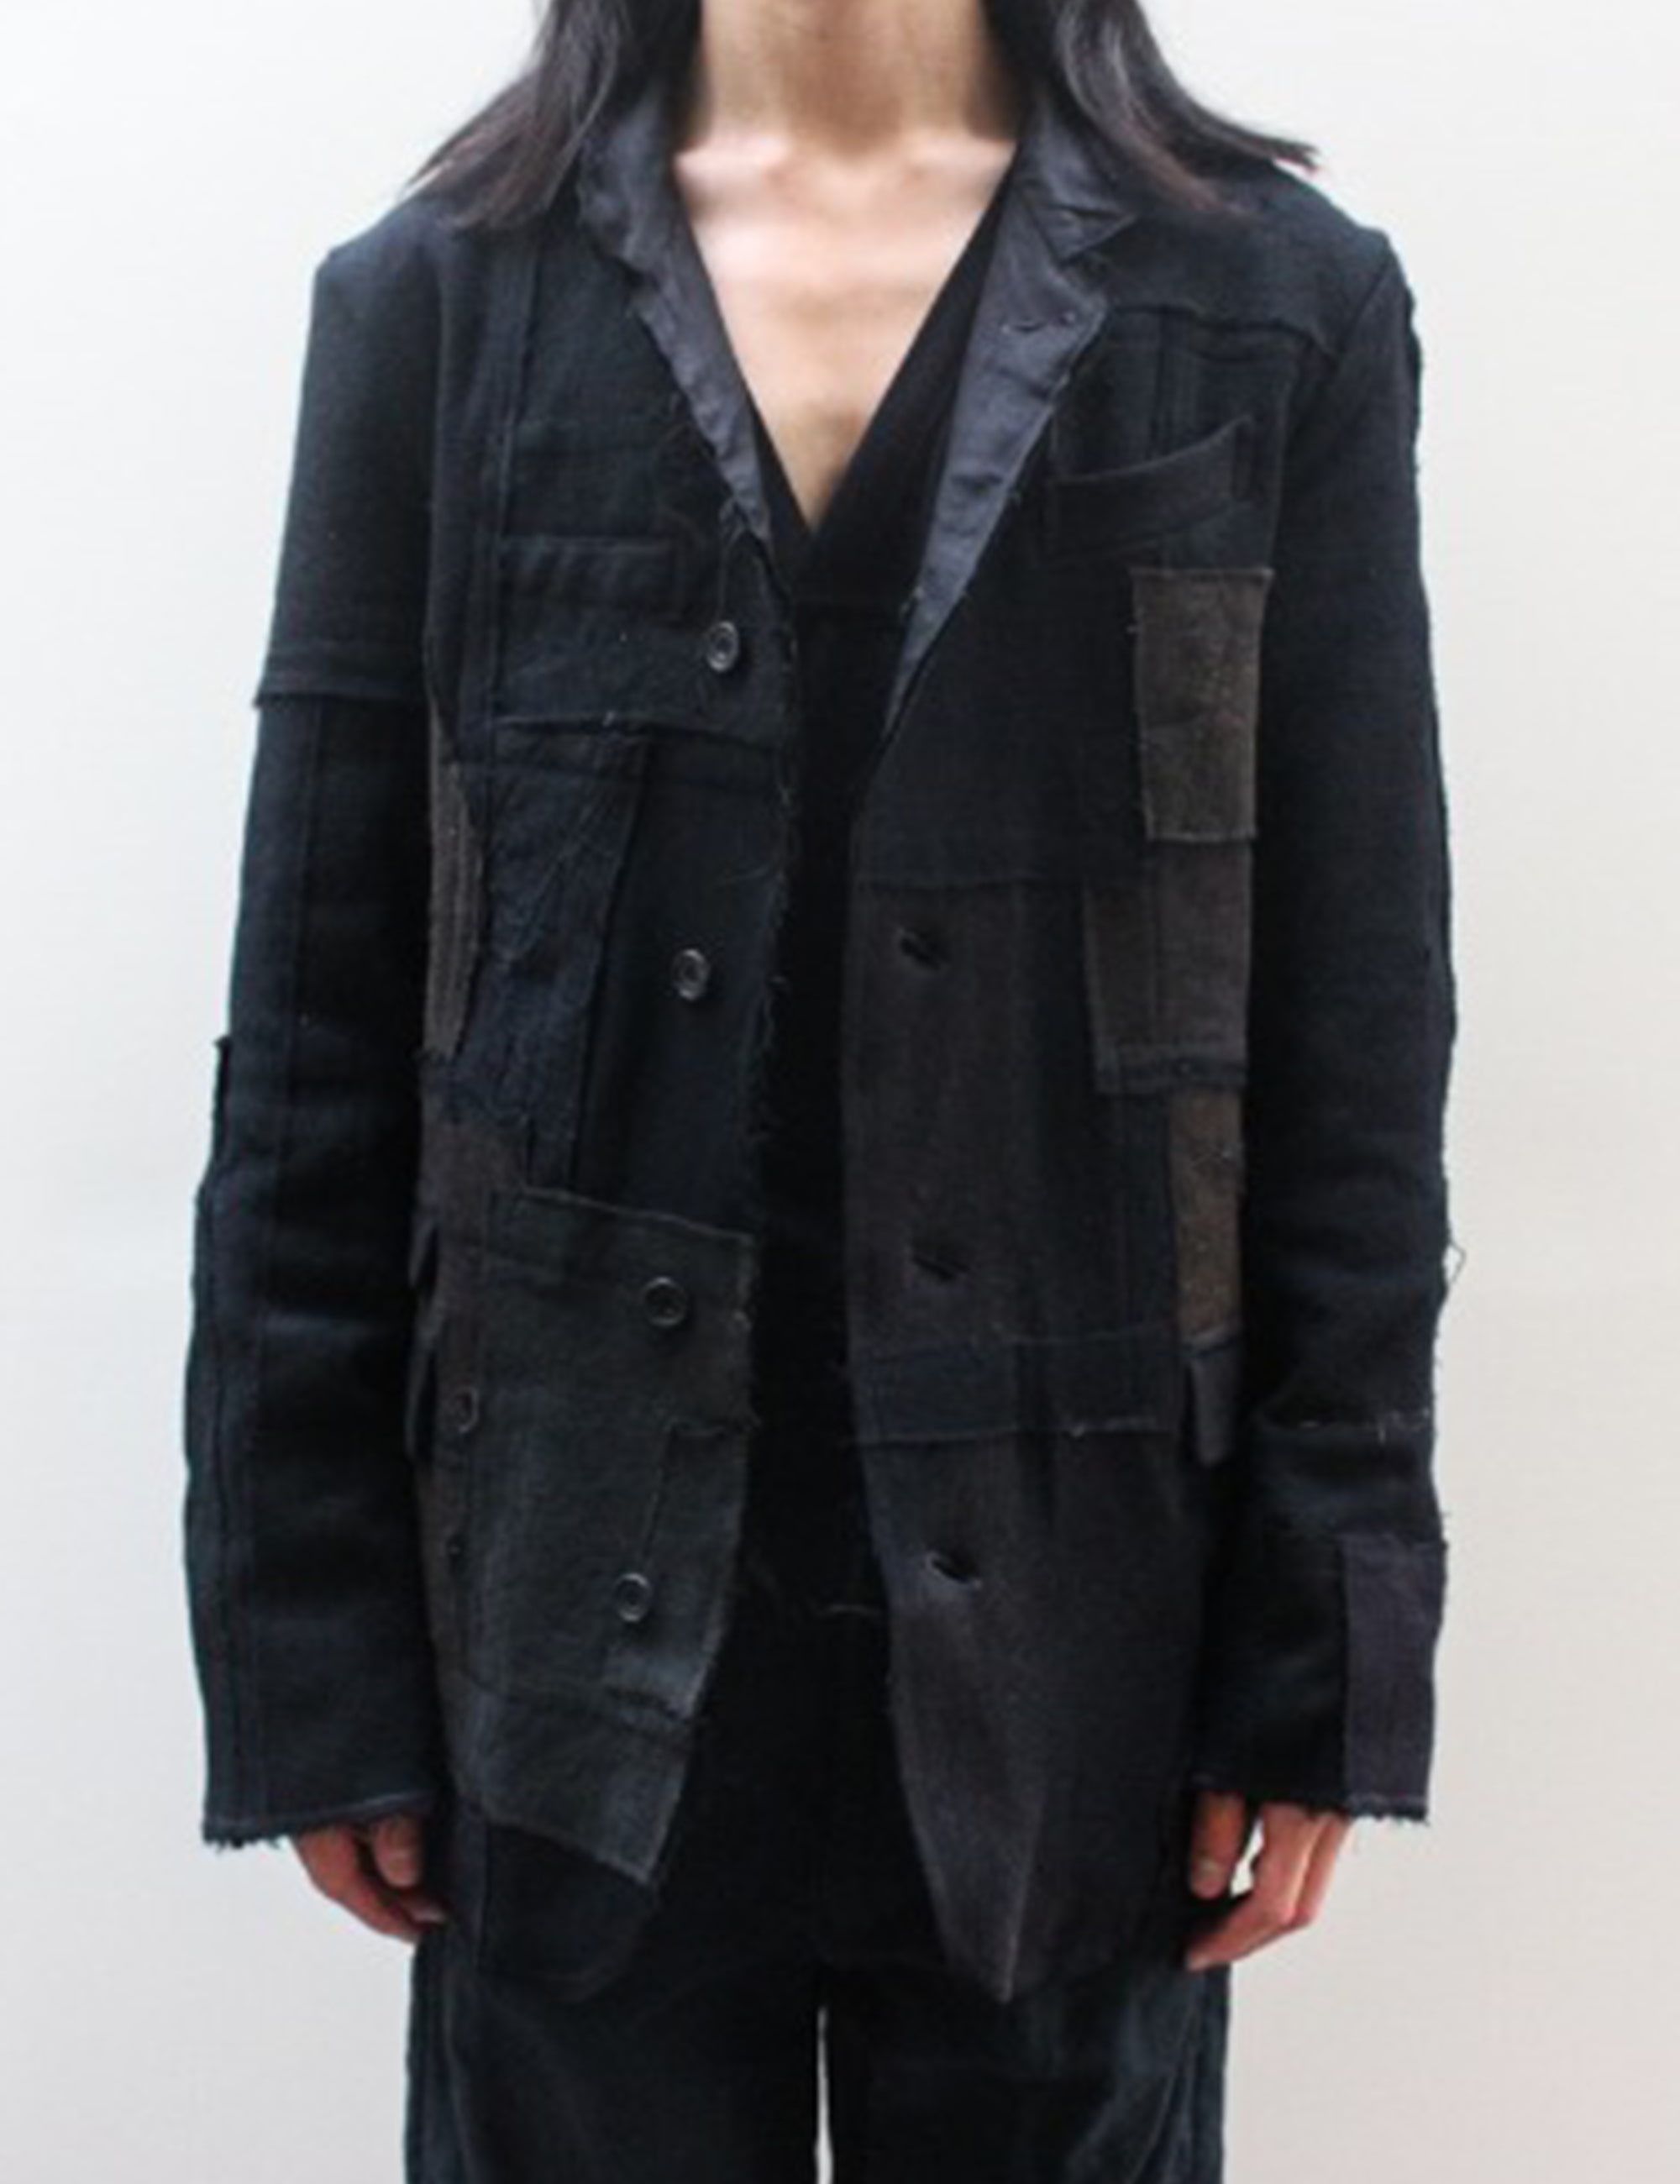 5 BUTTON JACKET